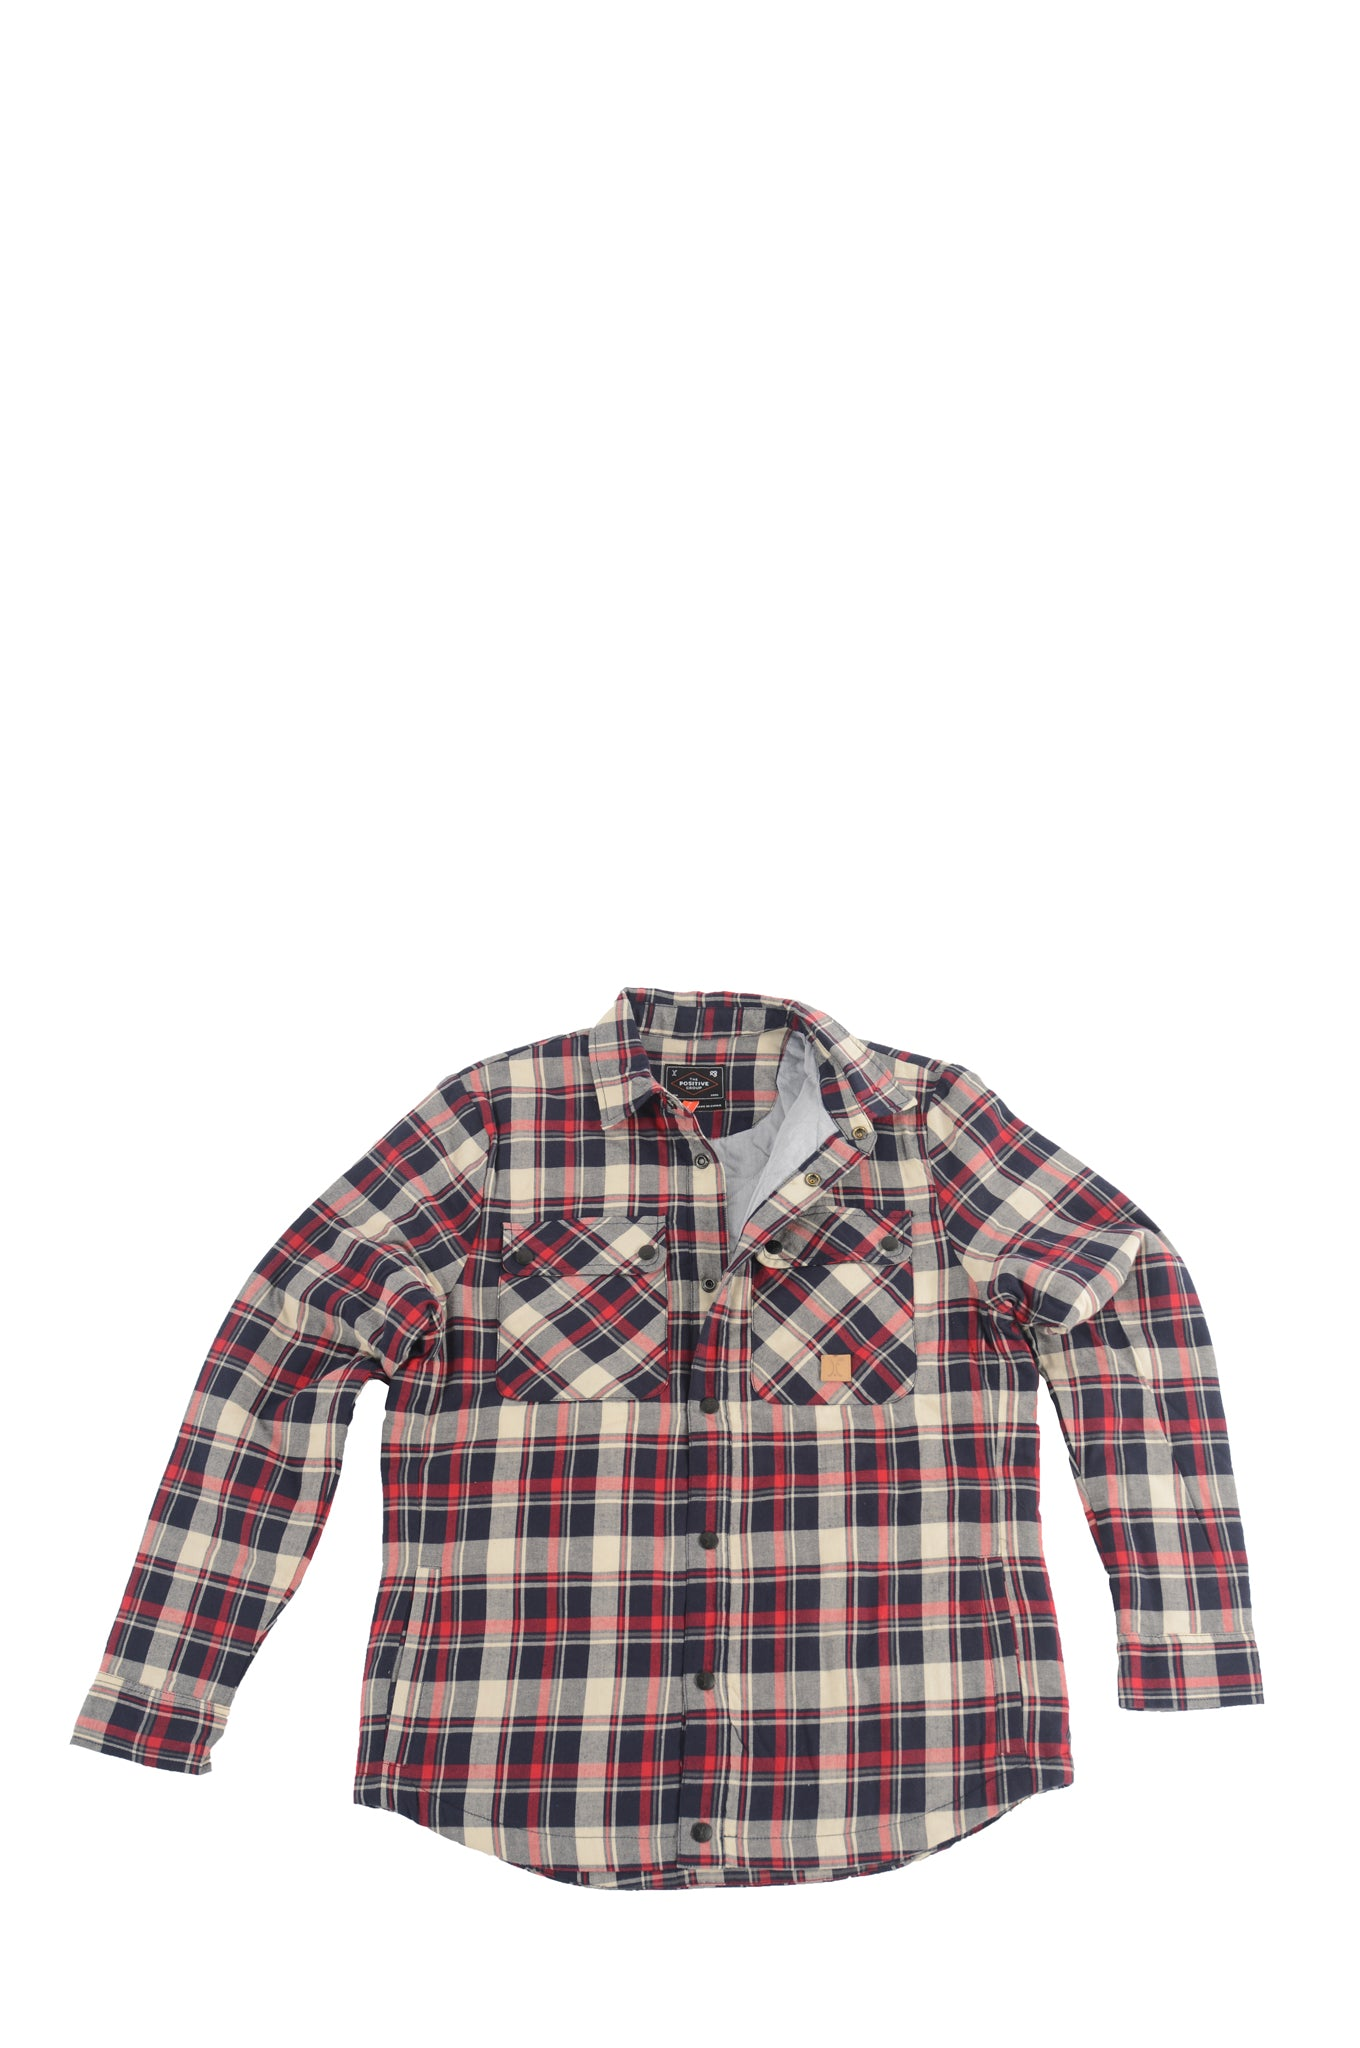 MAPLE CREEK SHIRT - MADRAS PLAID, Positive Group, MAPLE CREEK SHIRT - MADRAS PLAID